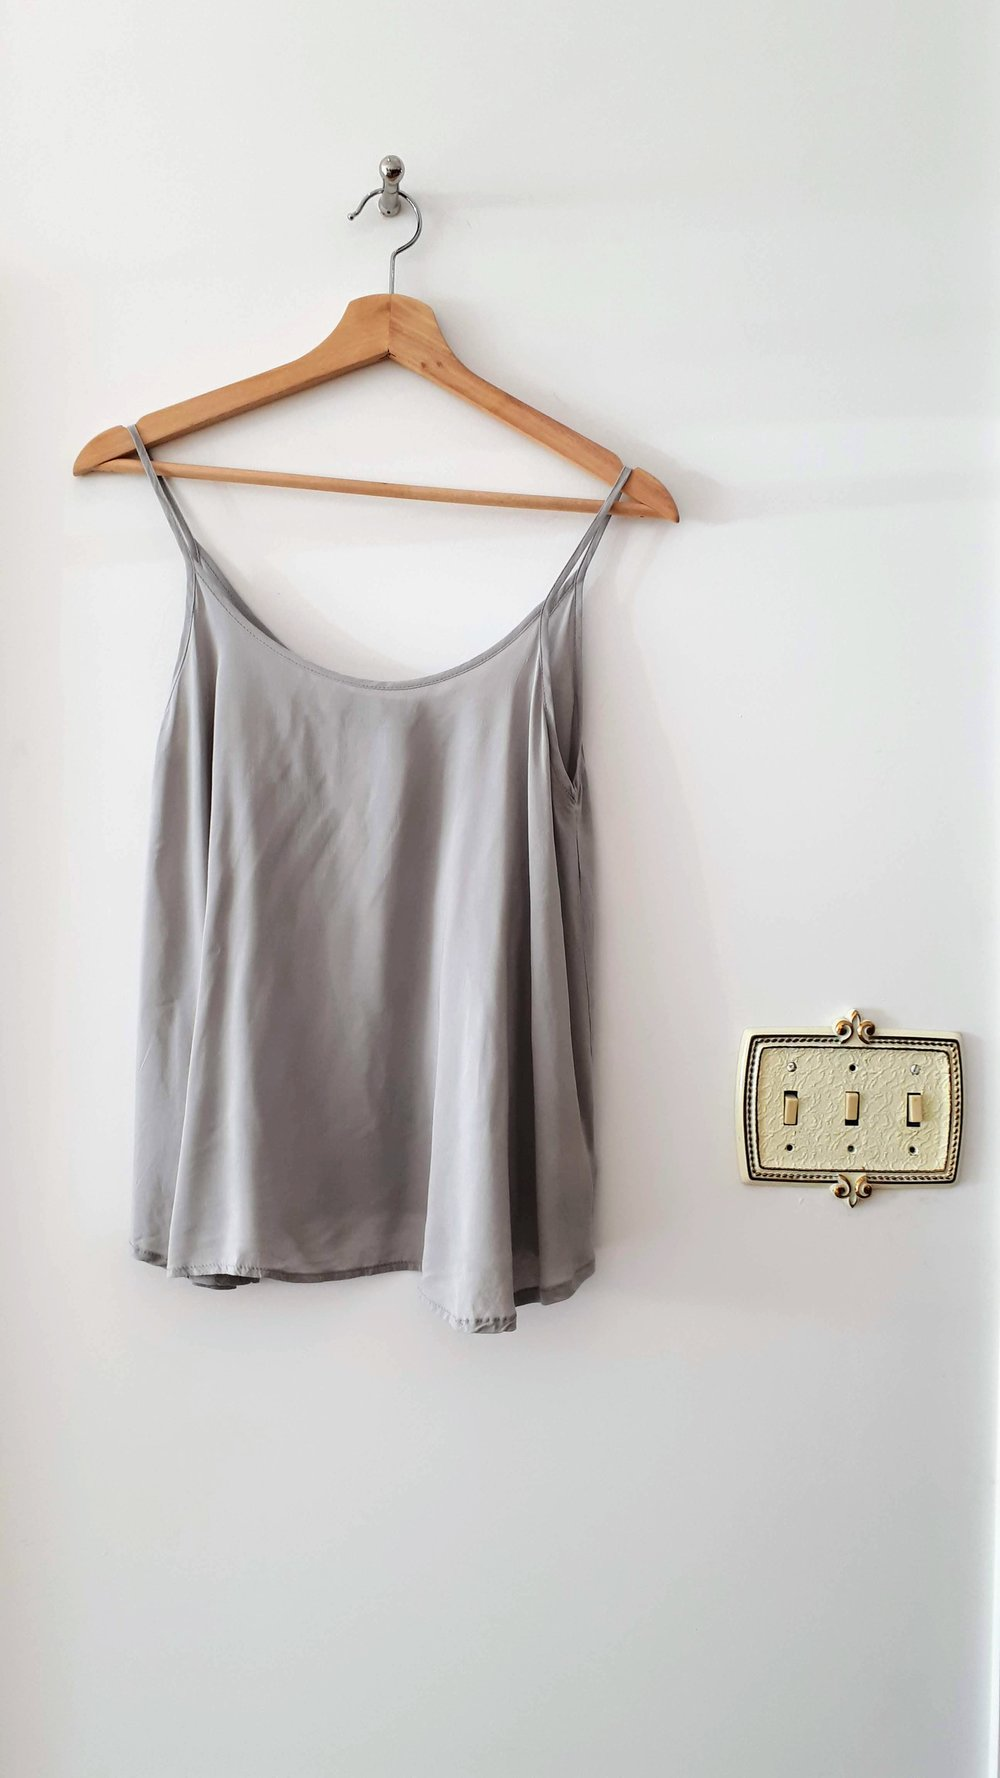 Workhall top; Size S, $24